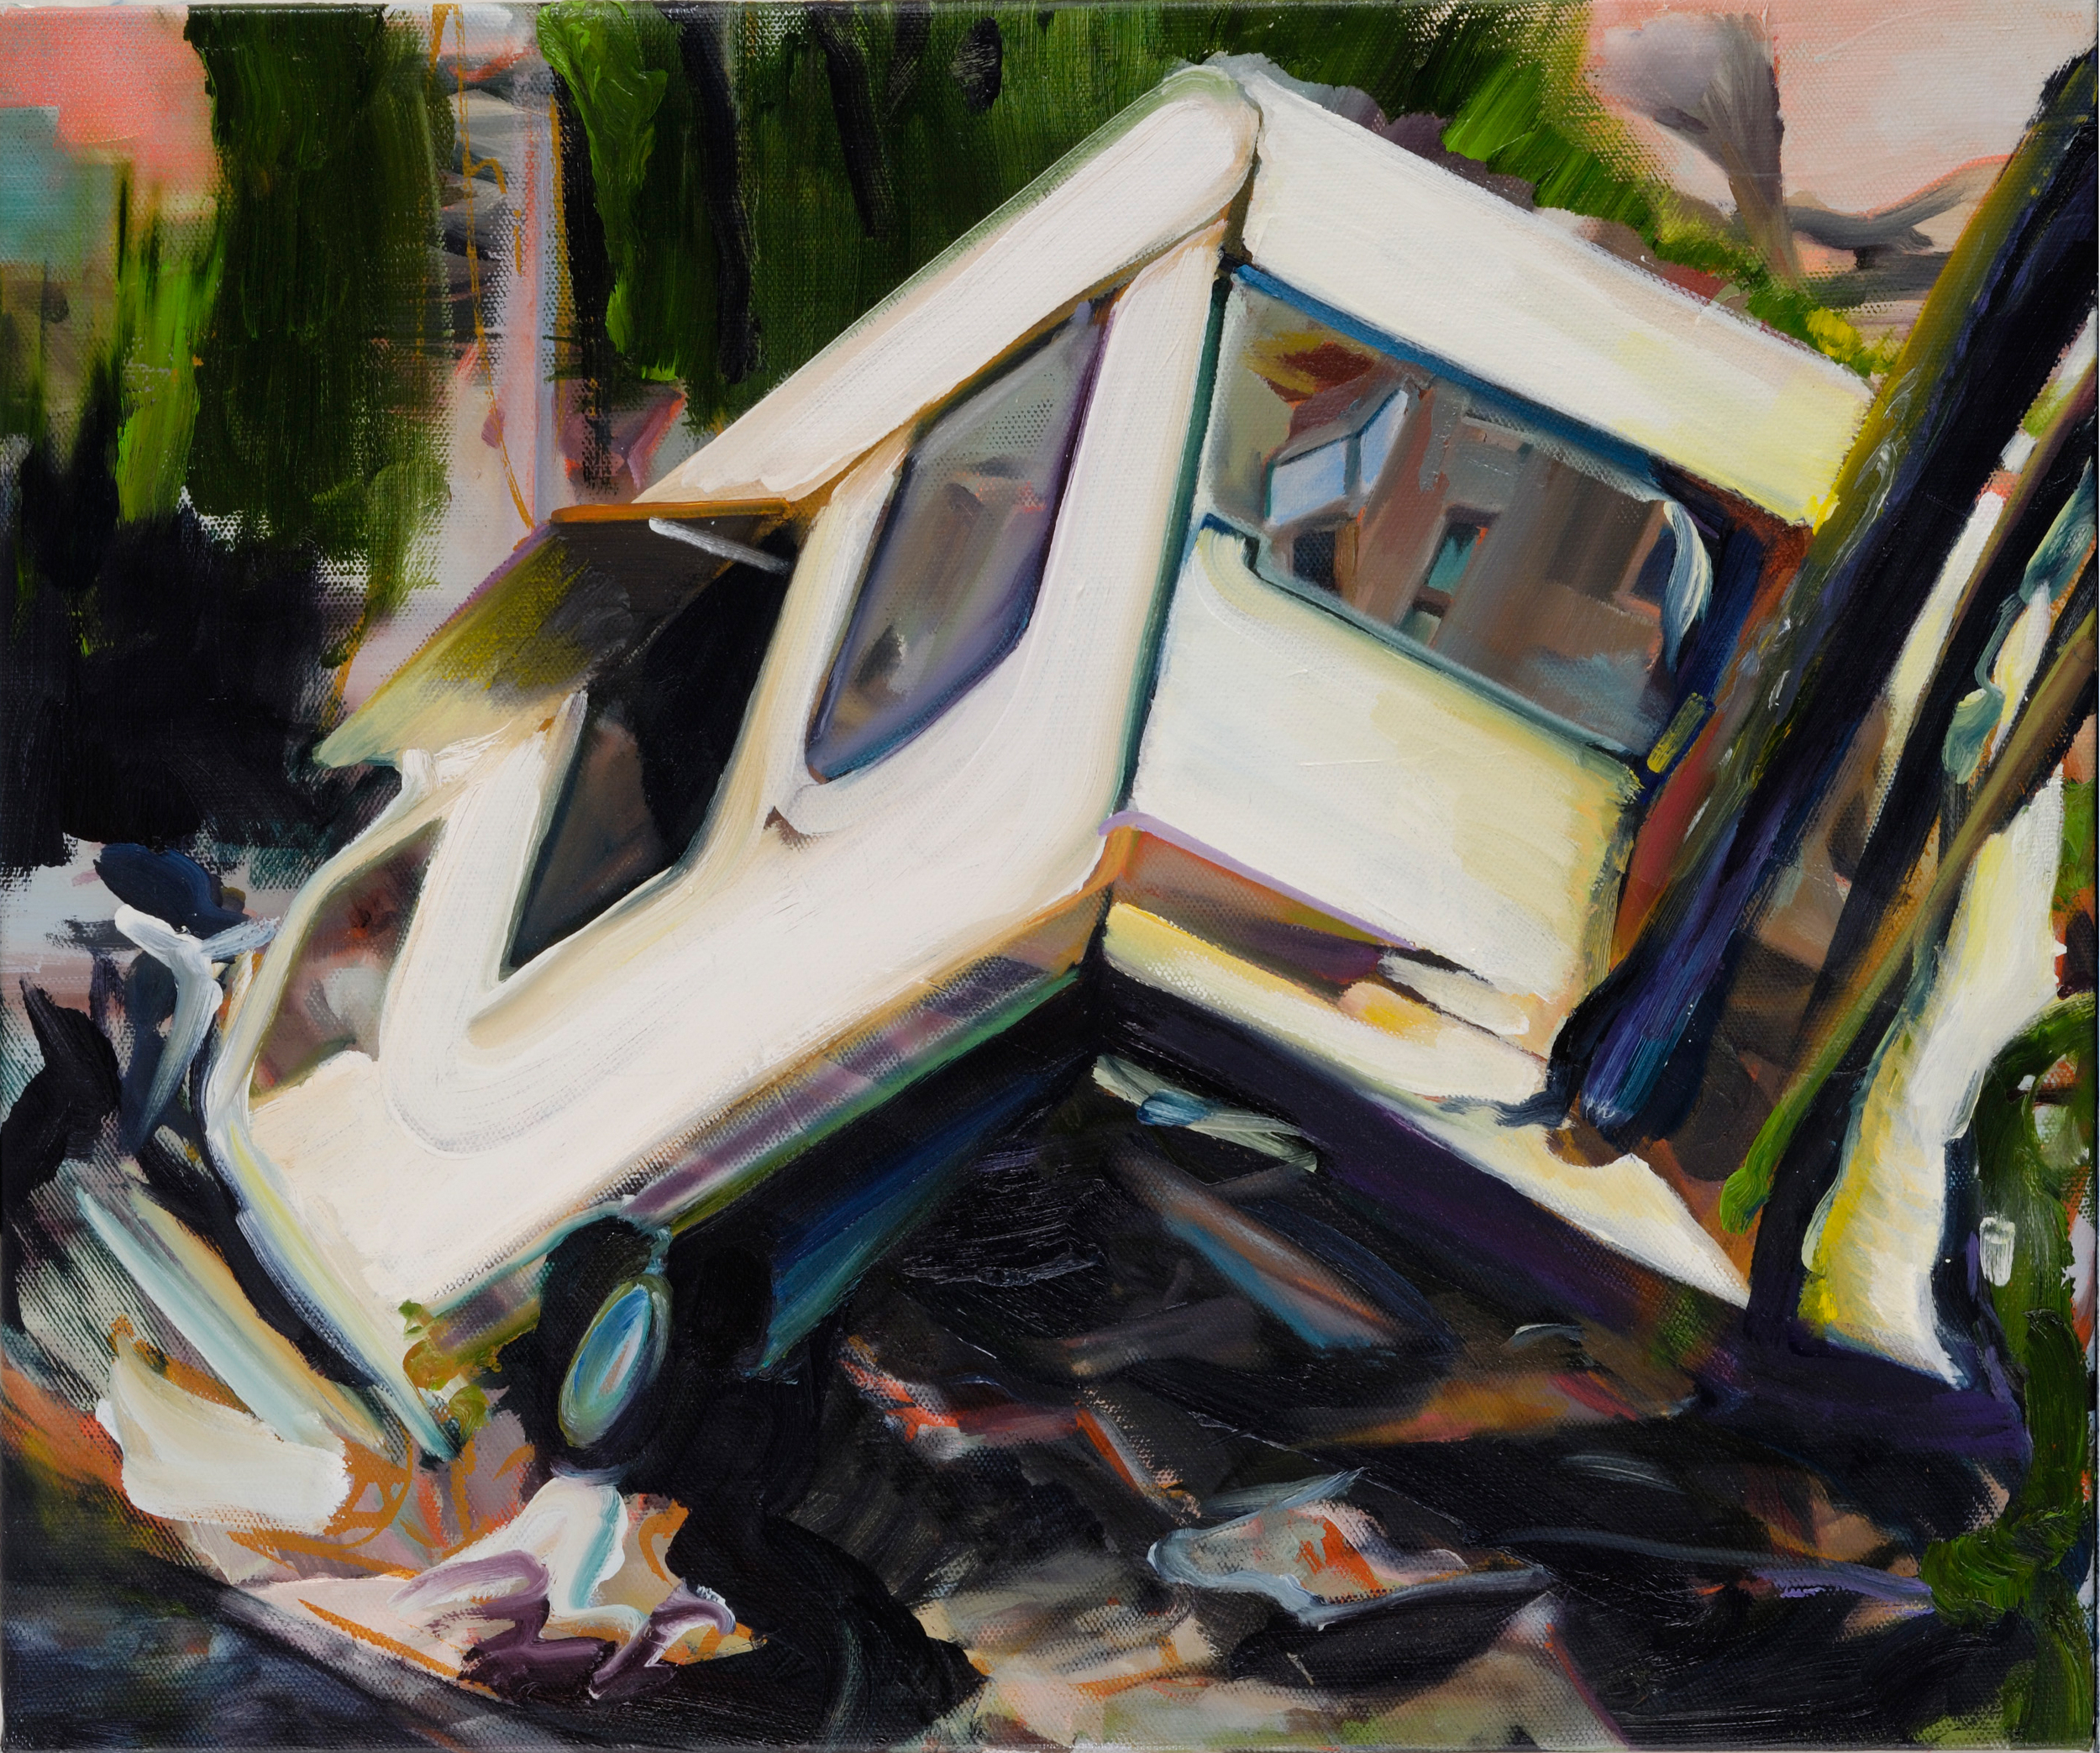 Mobile home , 2007, oil on canvas, 54 x 65cm. Olivier Masmonteil collection, France